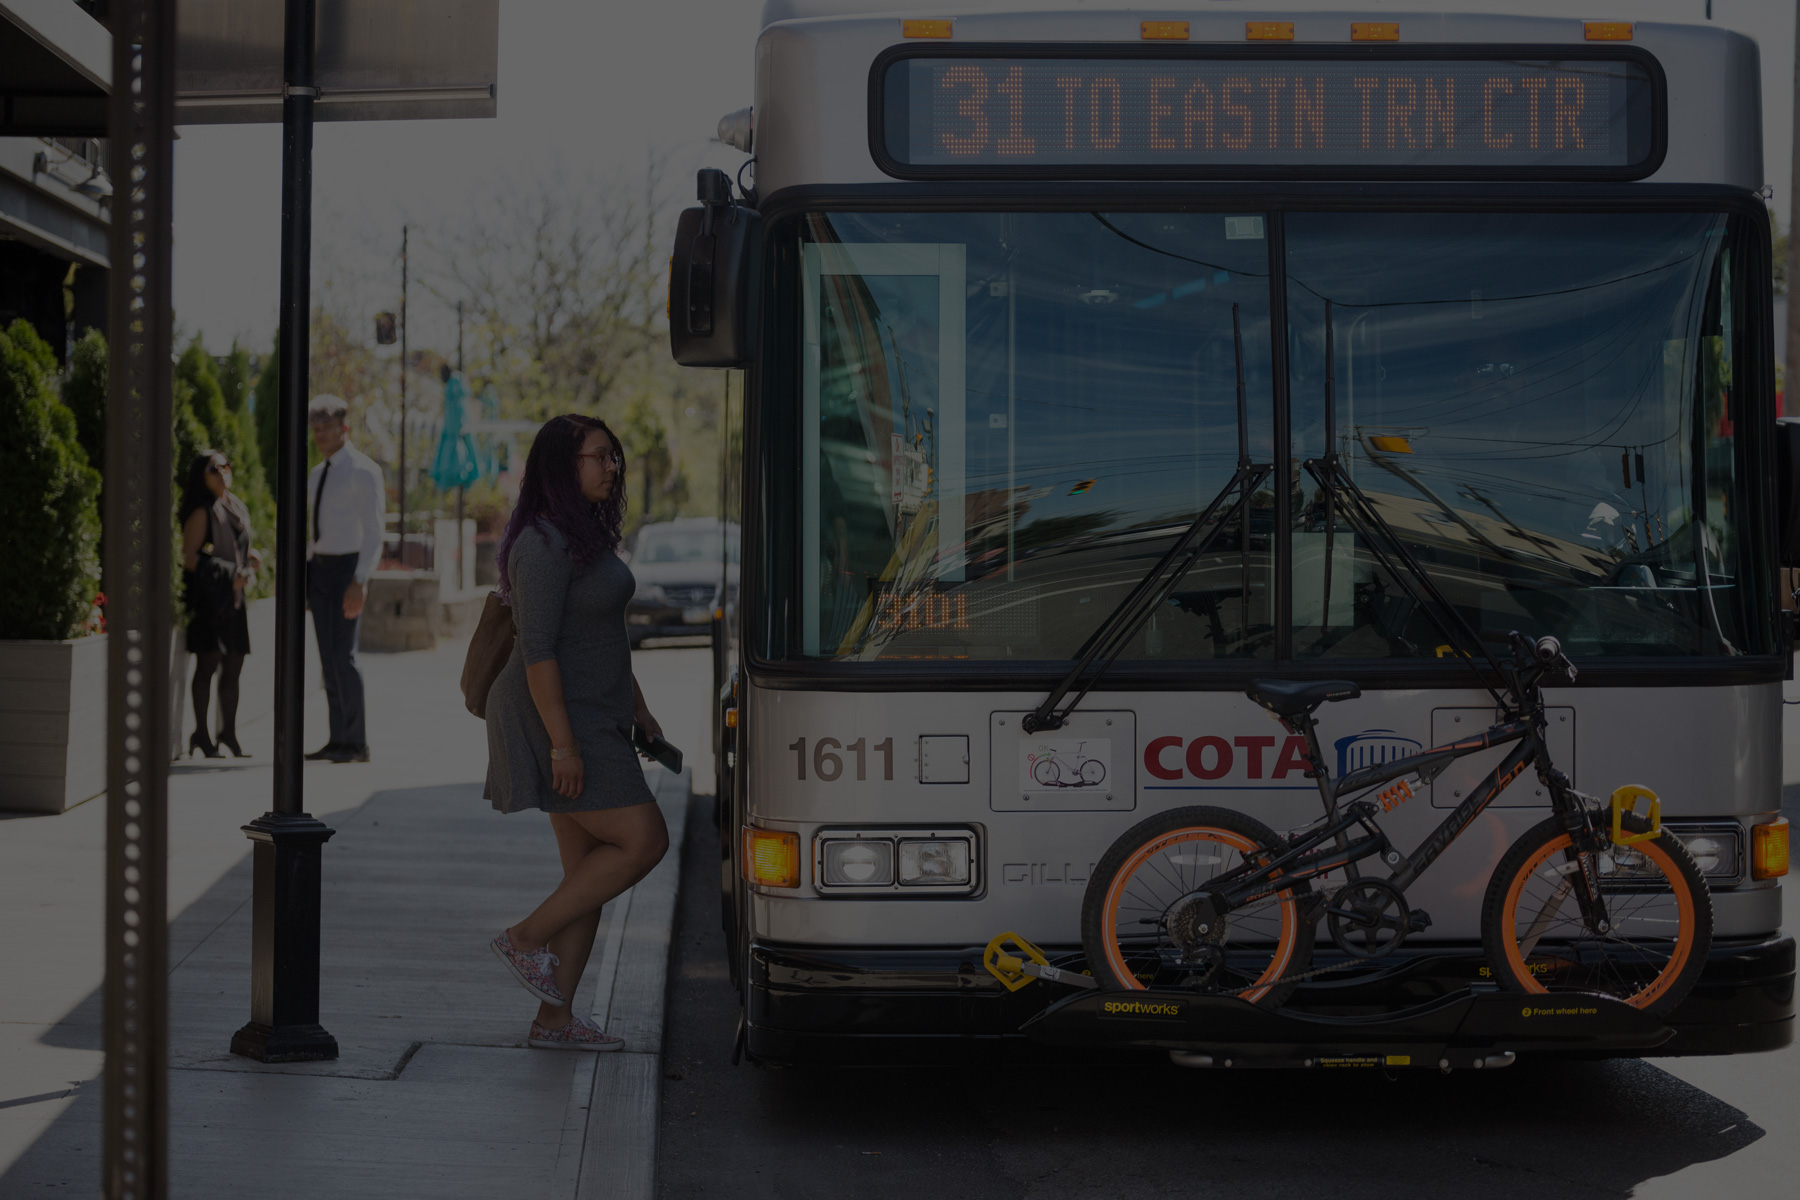 Report showcases how mobility impacts daily lives in Central Ohio